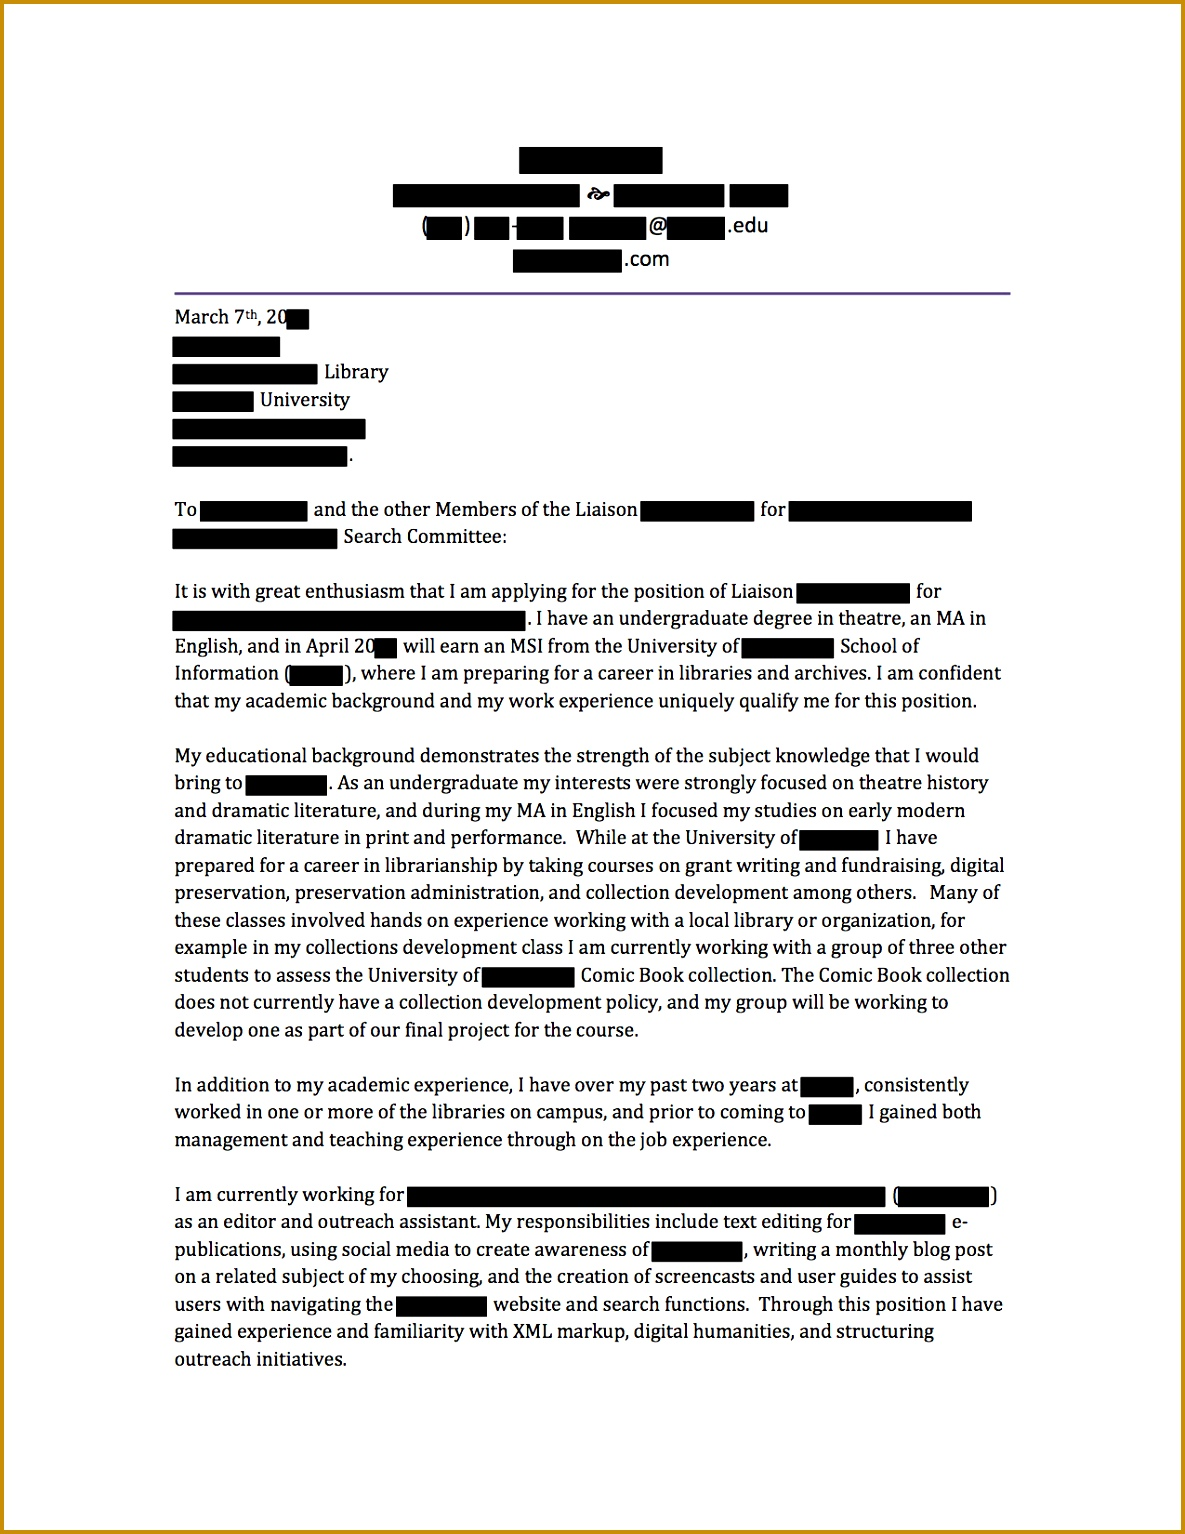 Placement Cover Letter Examples Luxury Cover Letter Examples for Internship Beautiful Job Letter 0d 15341185